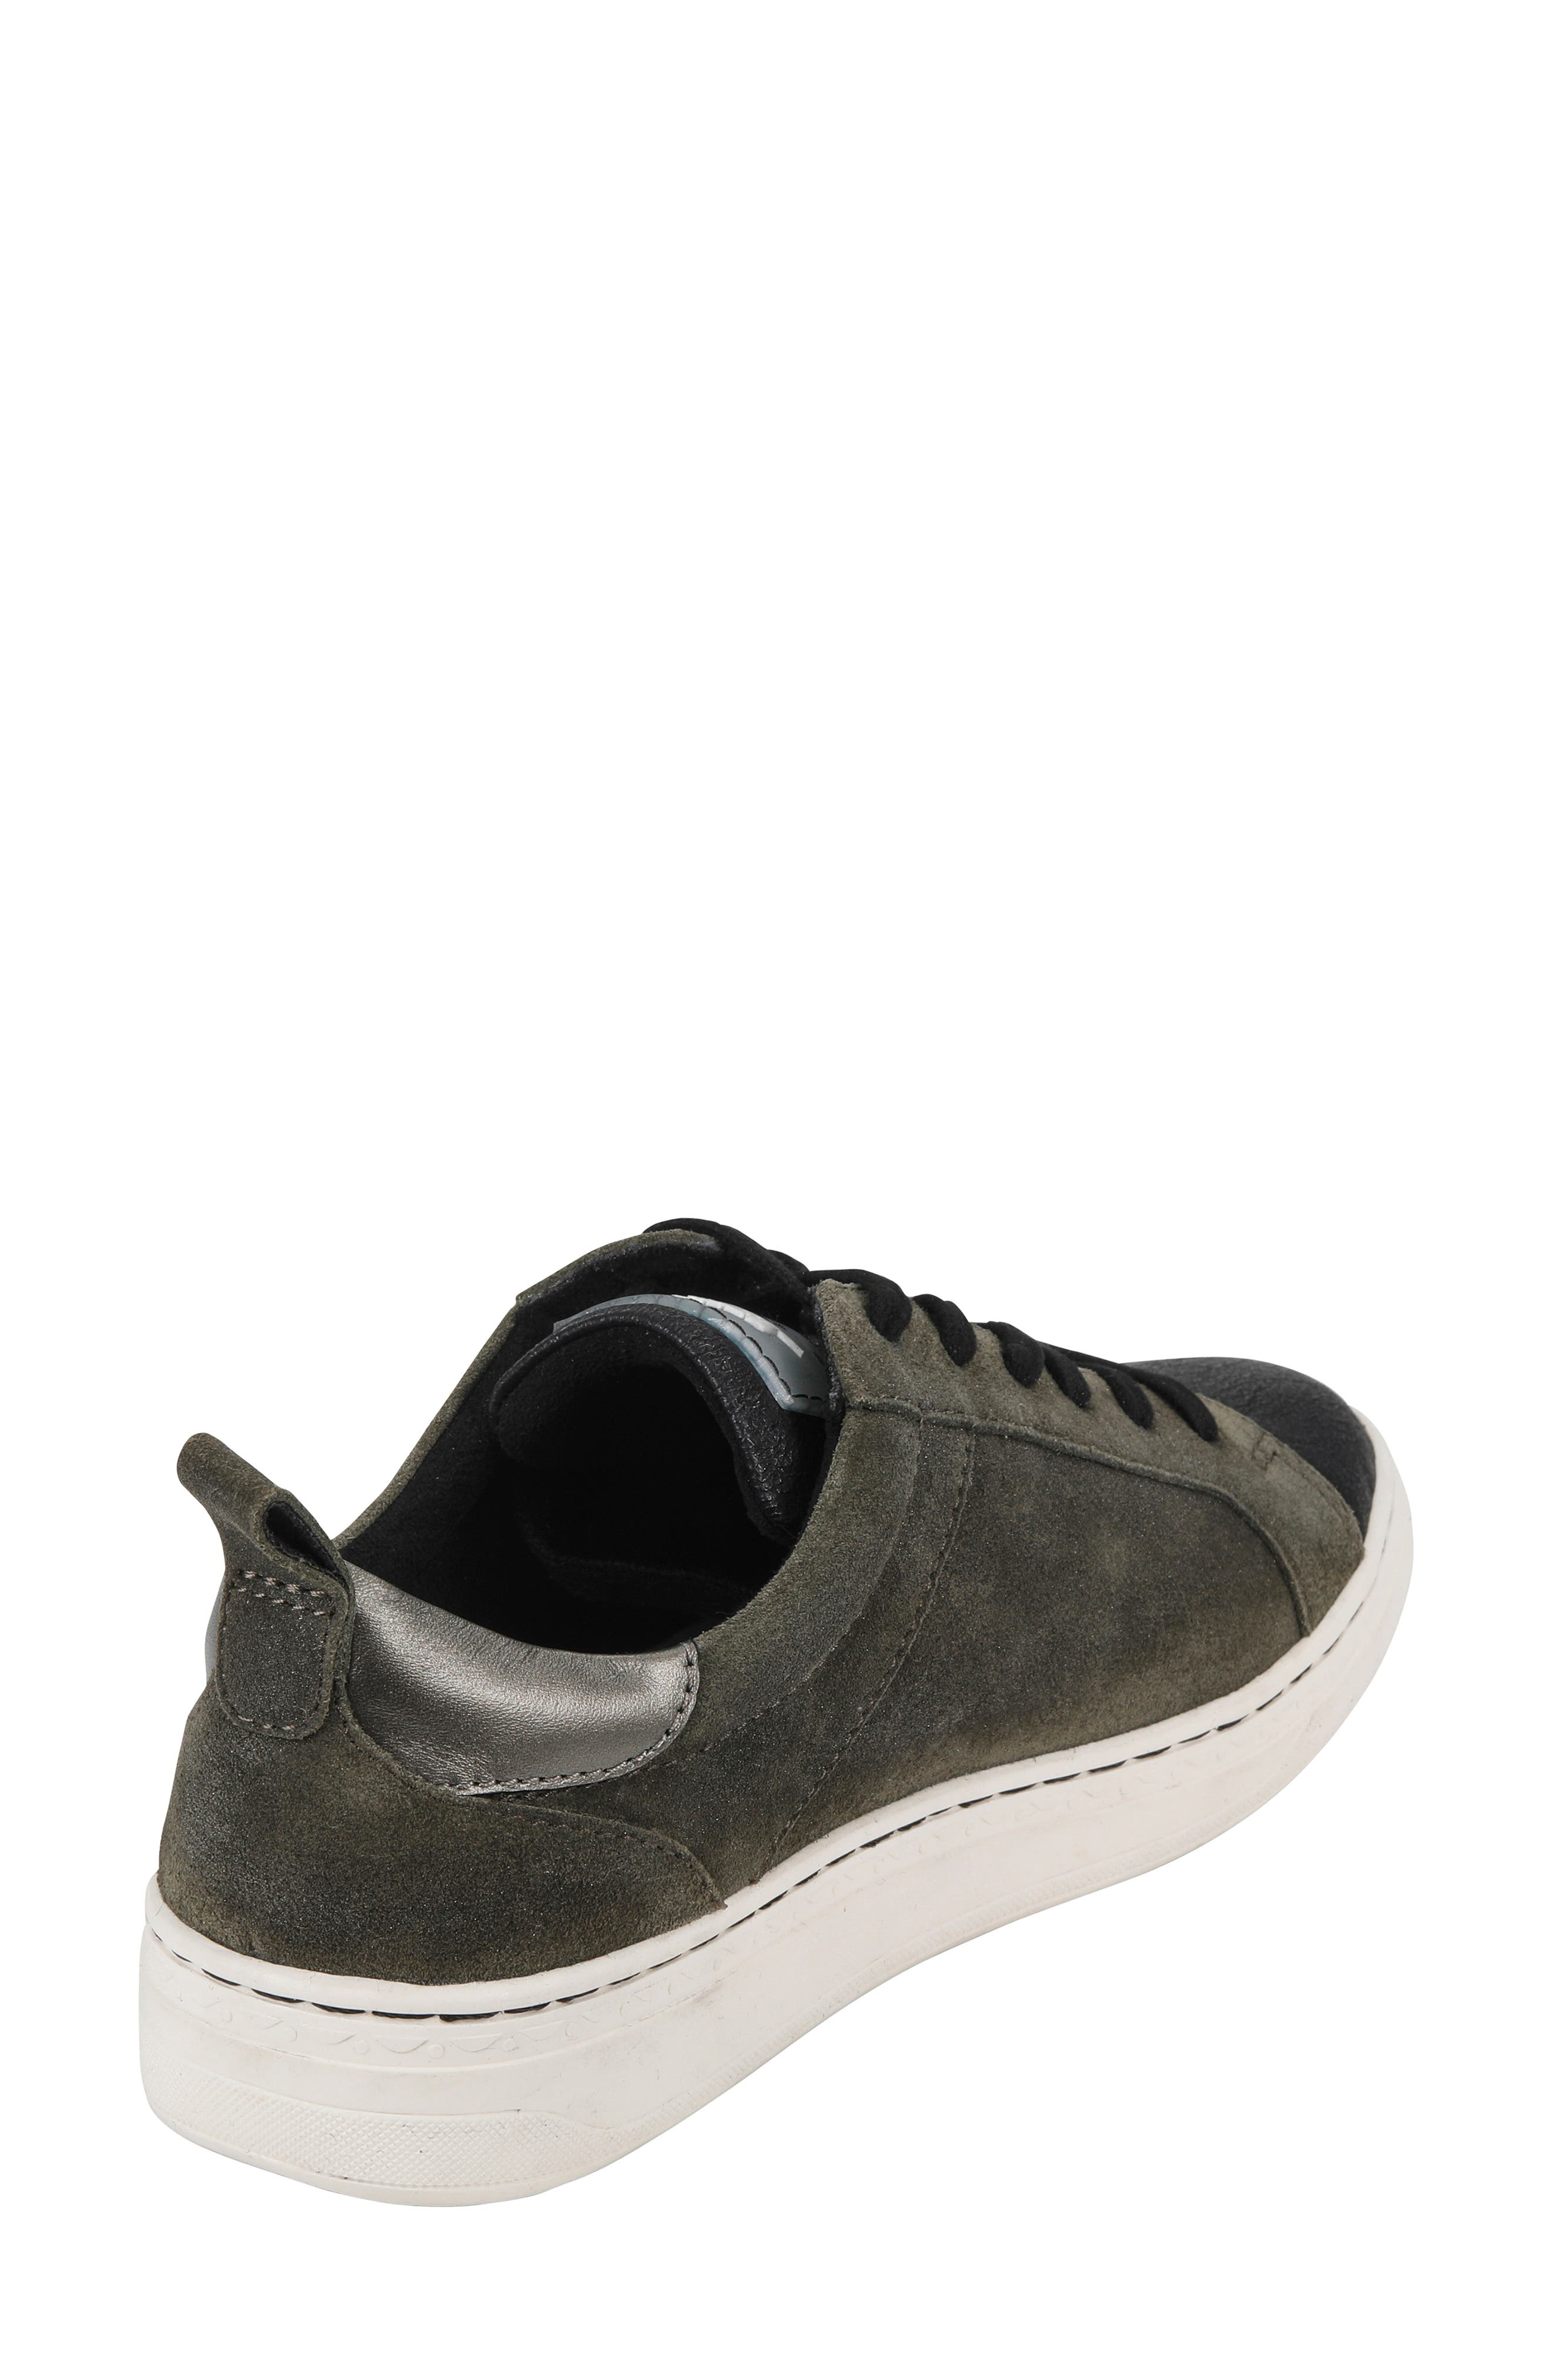 Zinnia Low Top Sneaker,                             Alternate thumbnail 2, color,                             BLACK METALLIC FAUX LEATHER